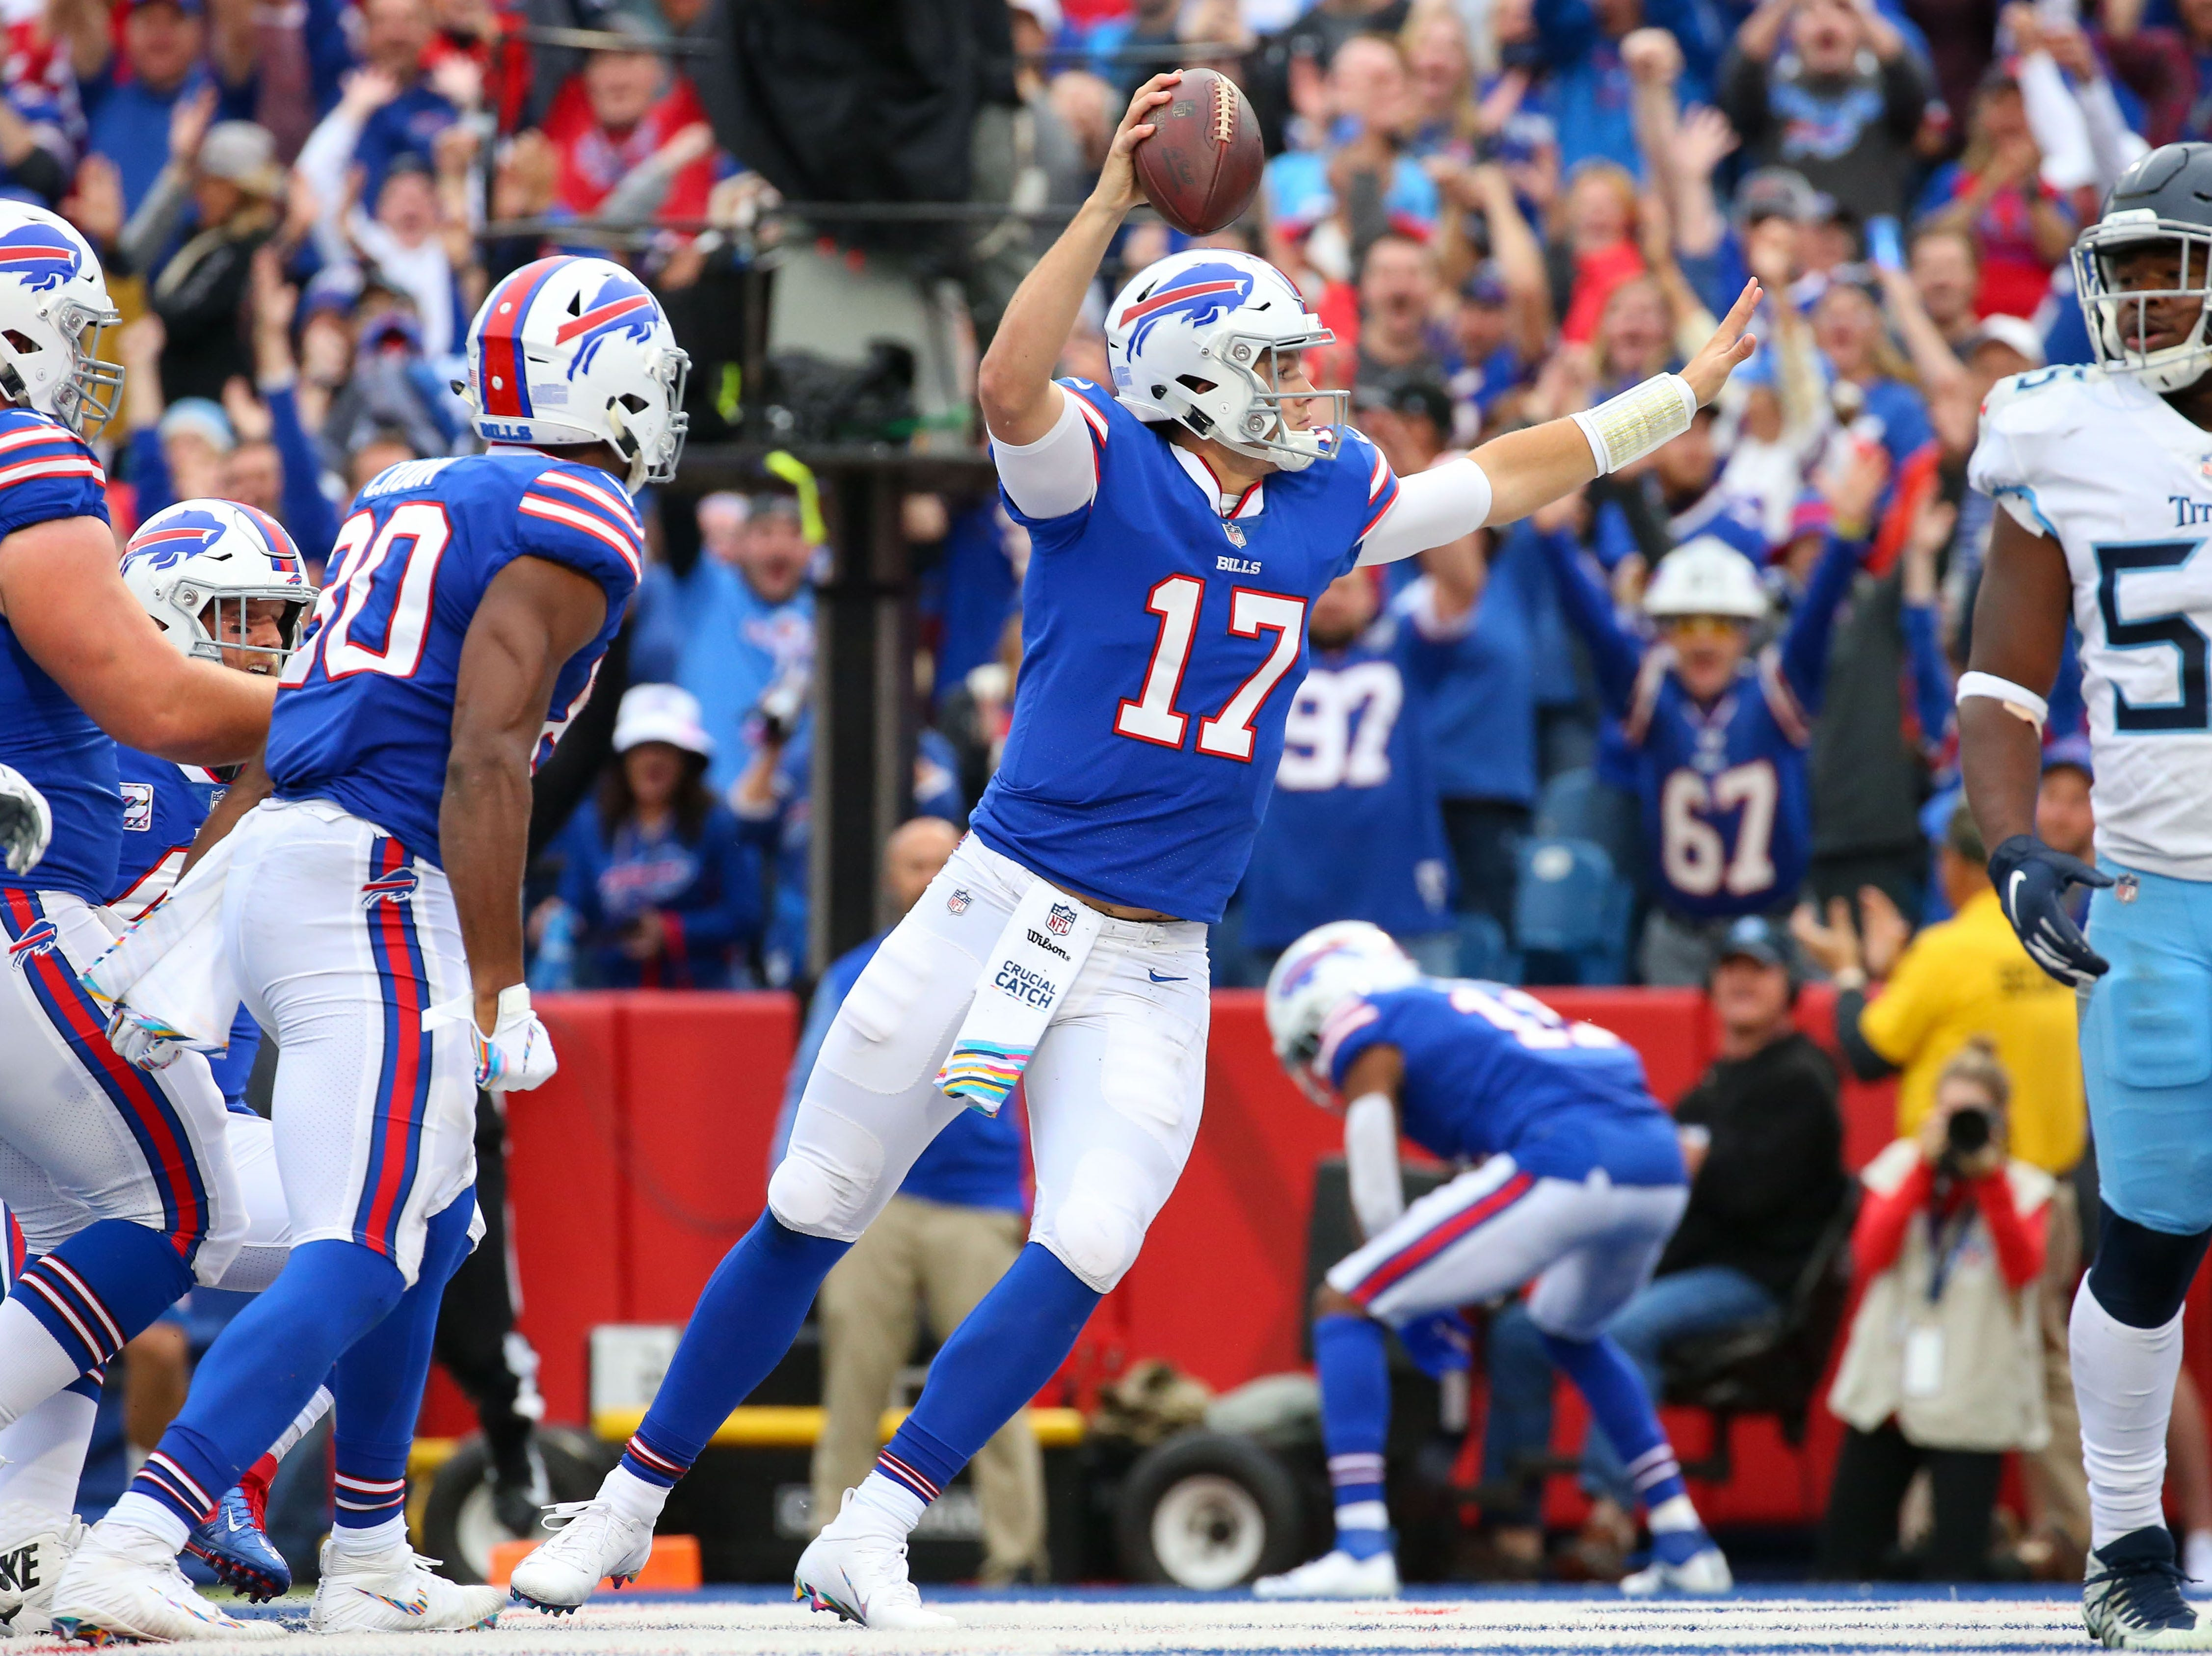 Oct 7, 2018; Orchard Park, NY, USA; Buffalo Bills quarterback Josh Allen (17) celebrates after making a touchdown run against the Tennessee Titans during the first quarter at New Era Field.